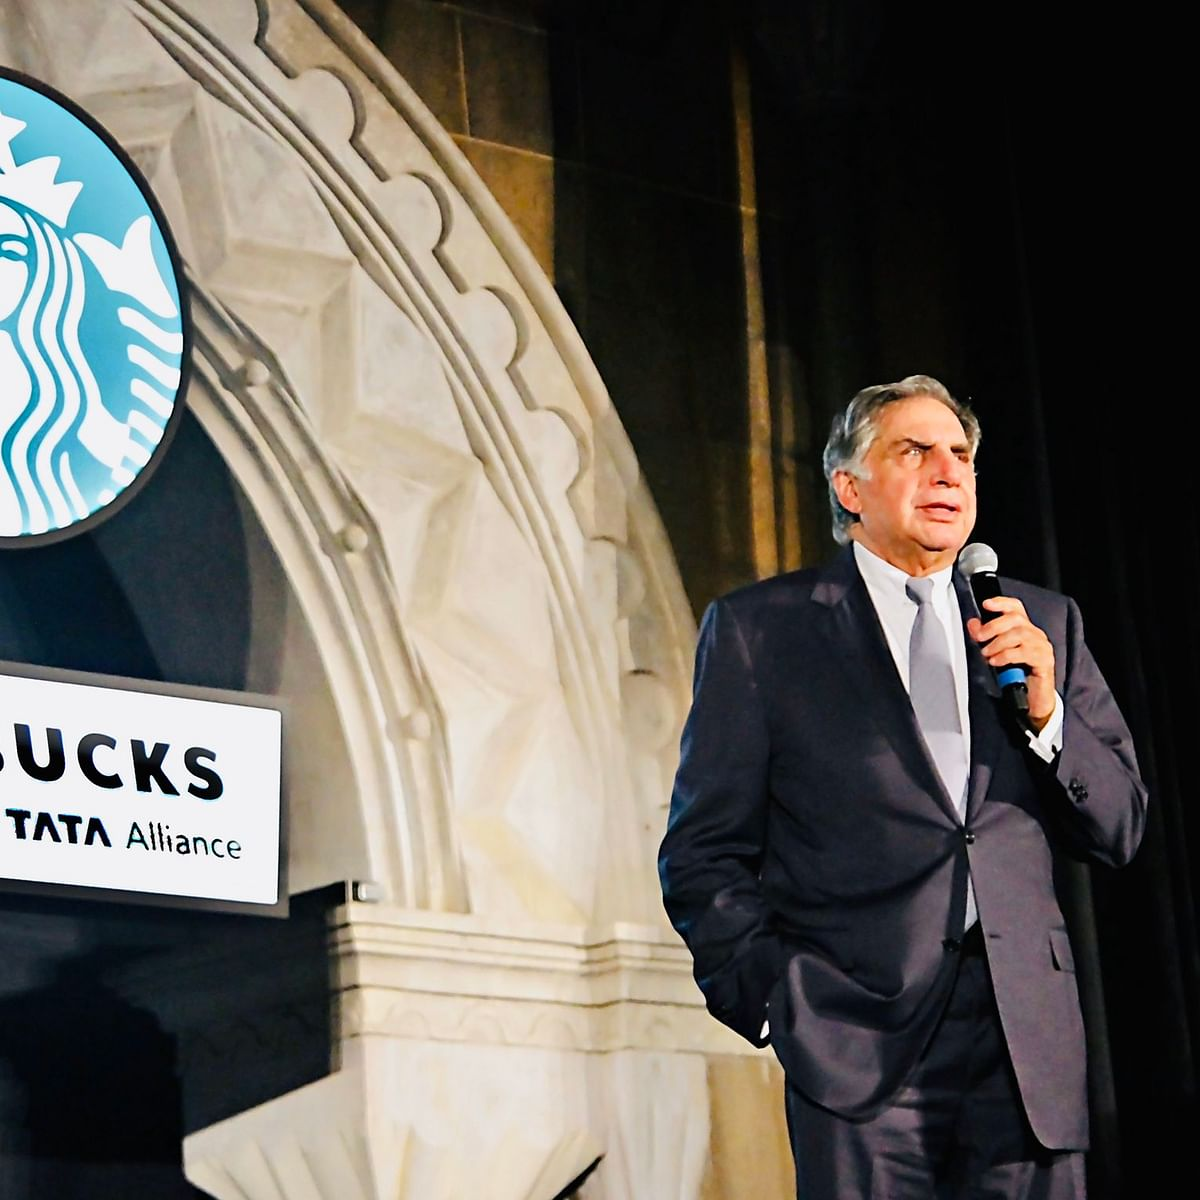 What did Tata Starbucks brew in 2019-20?